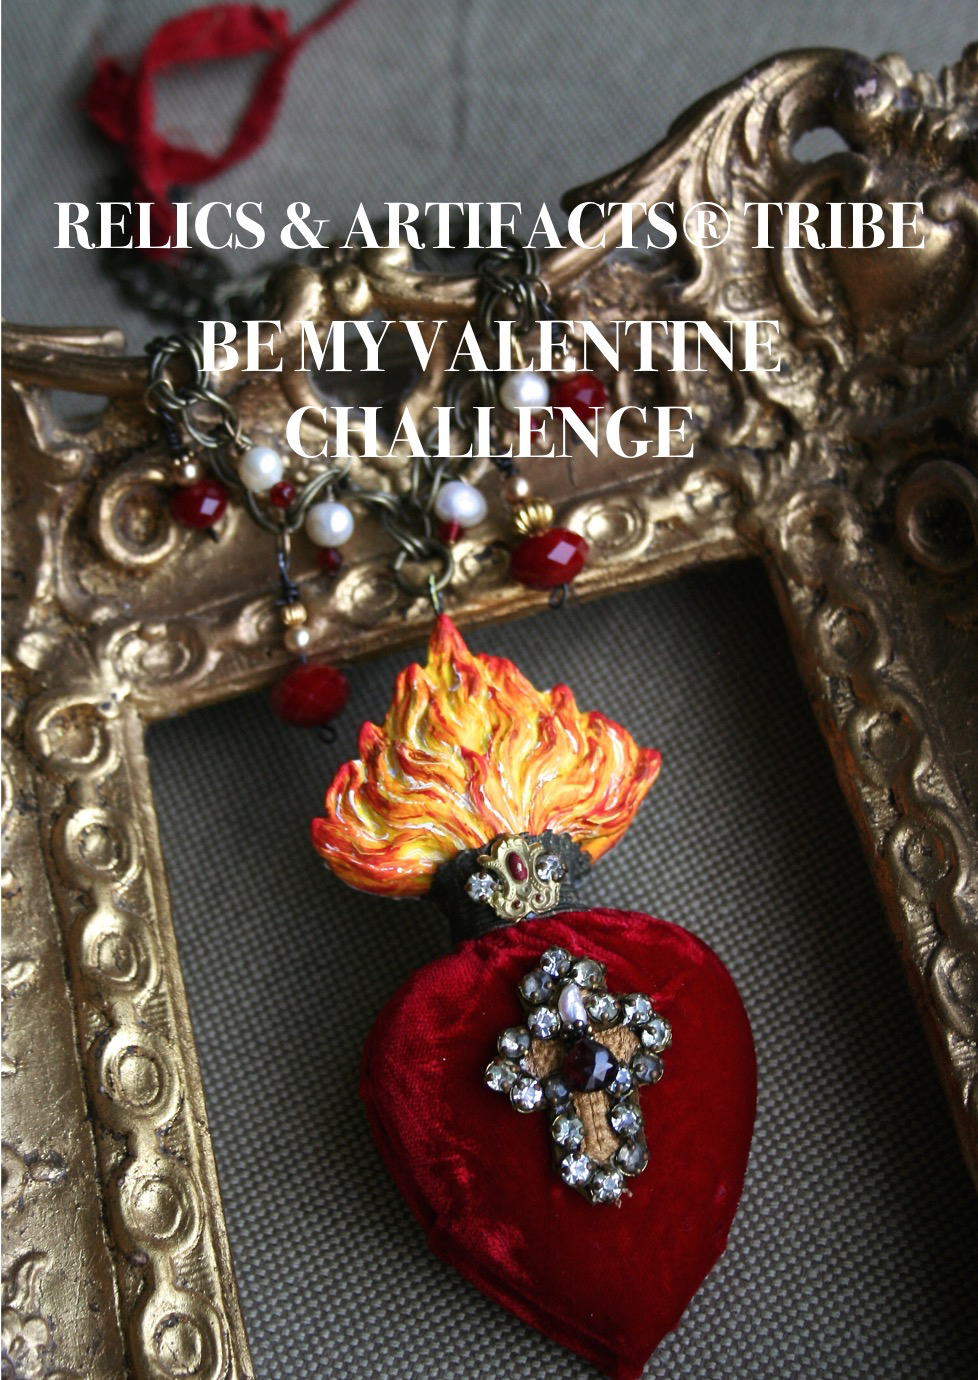 Relics & Artifacts Be My Valentine Challenge